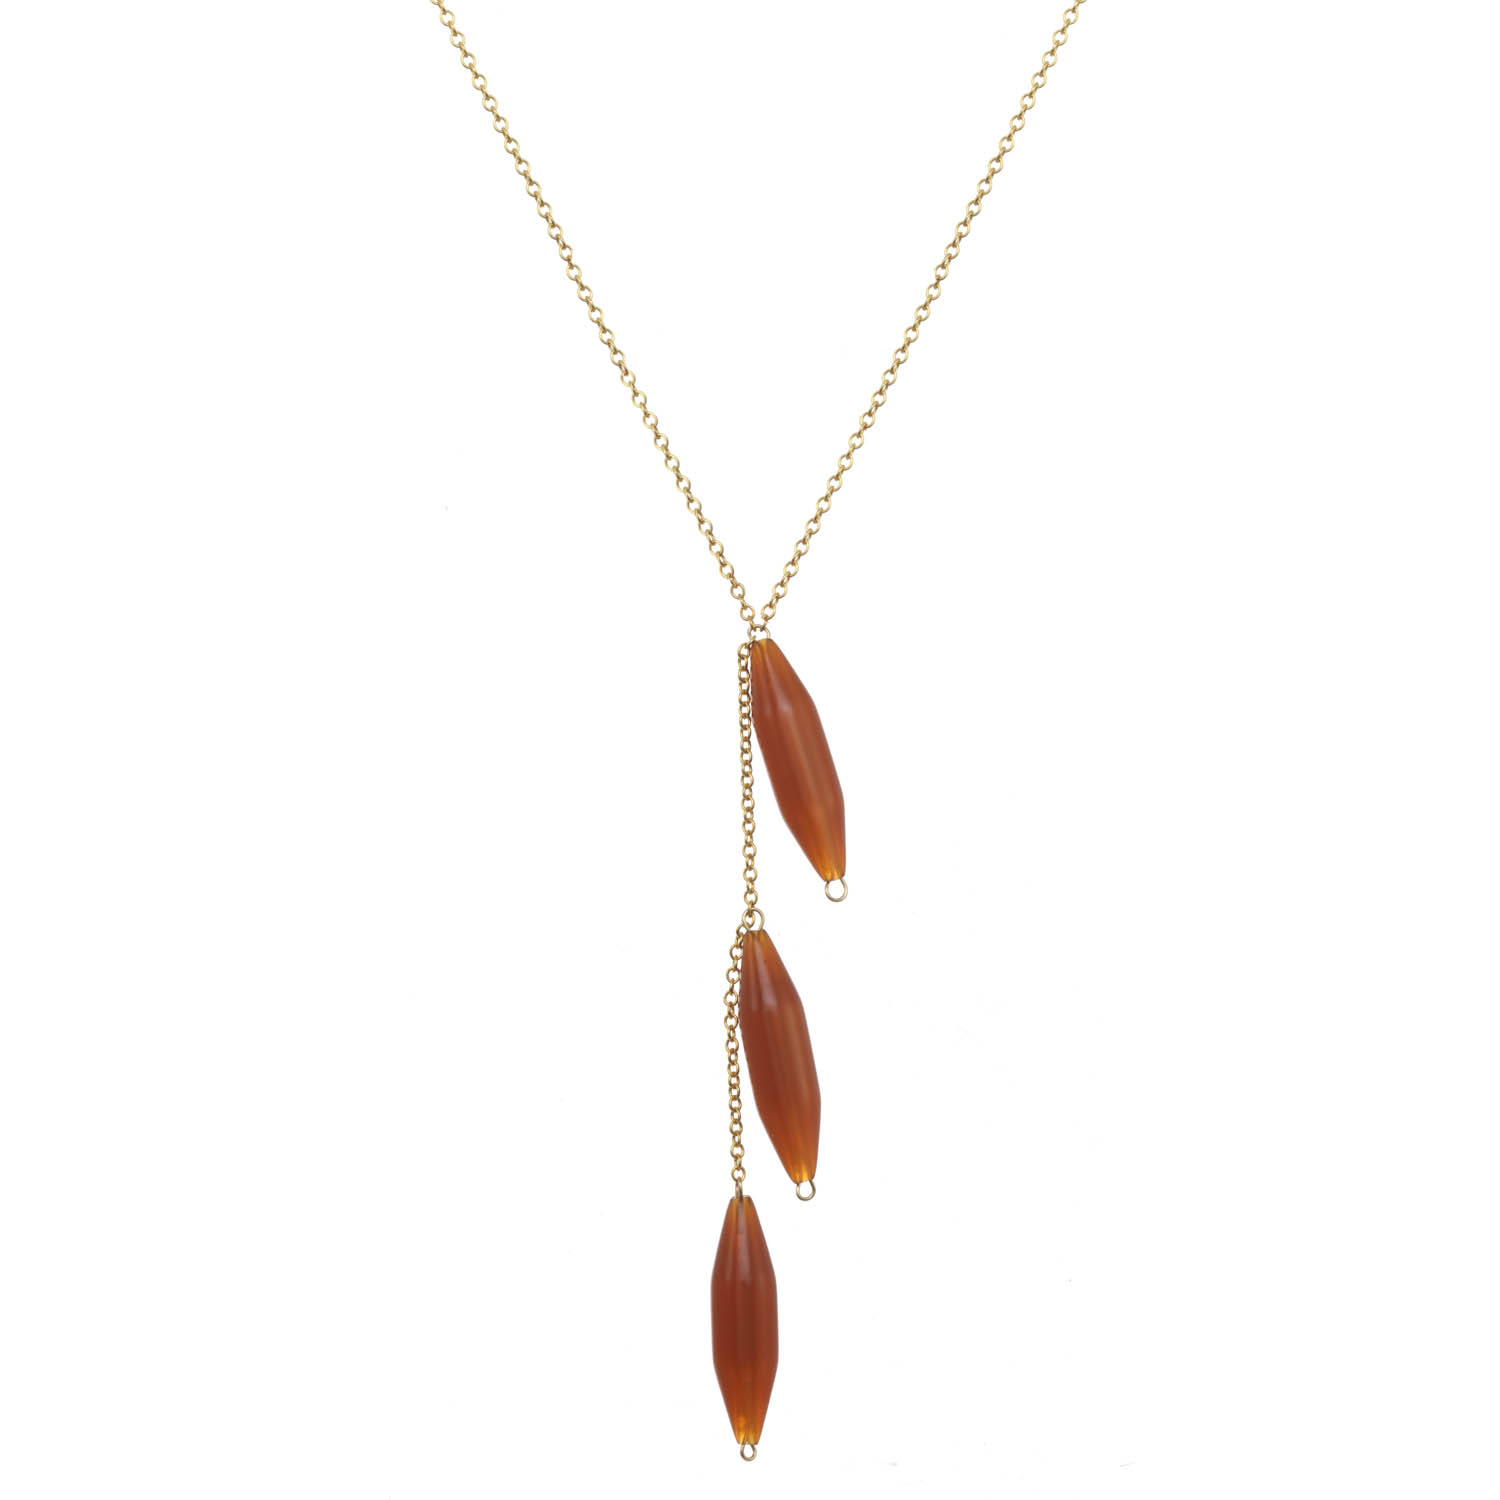 Annika Inez Necklace